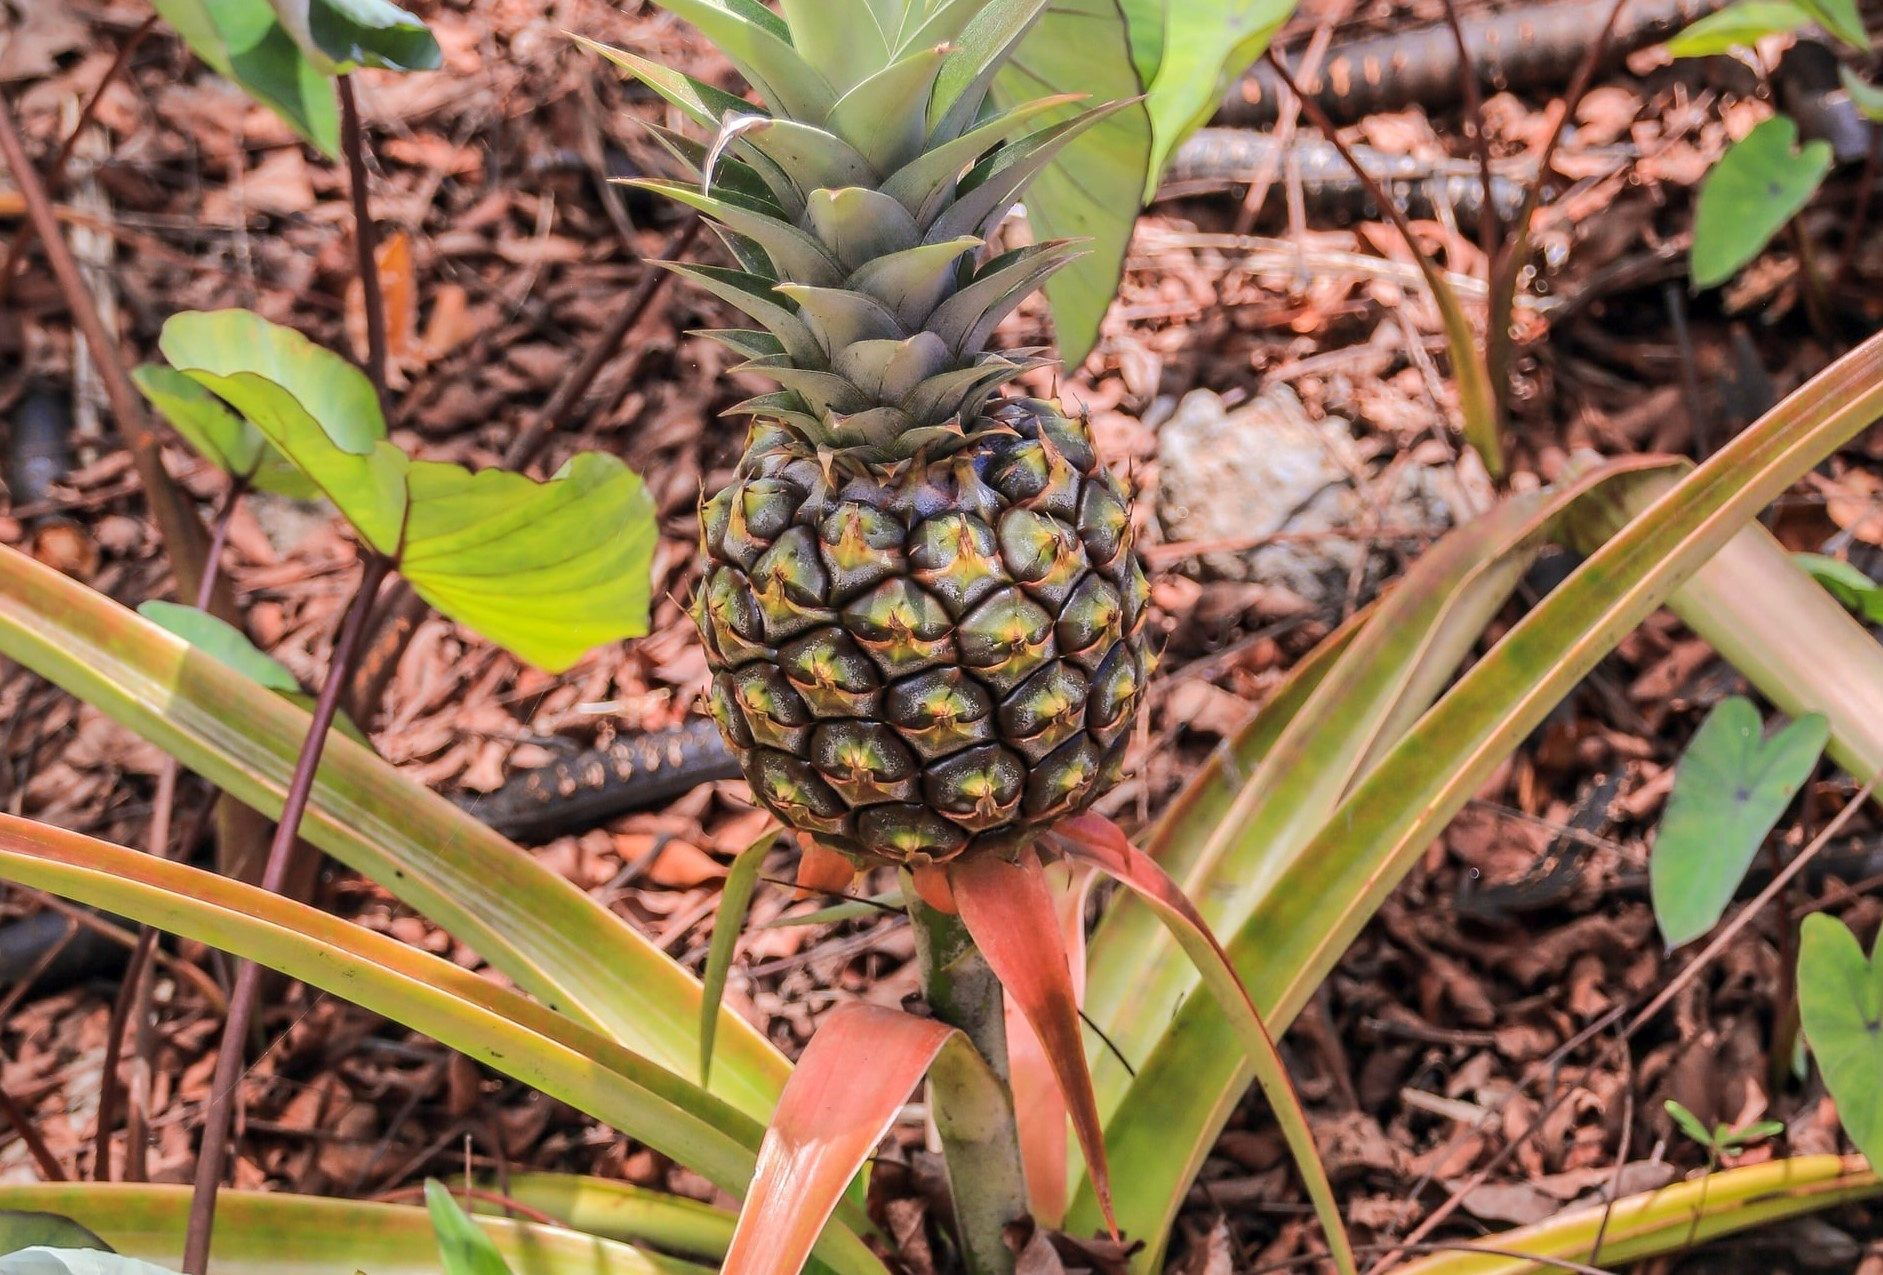 Some Important things about Cultivation of Pineapple